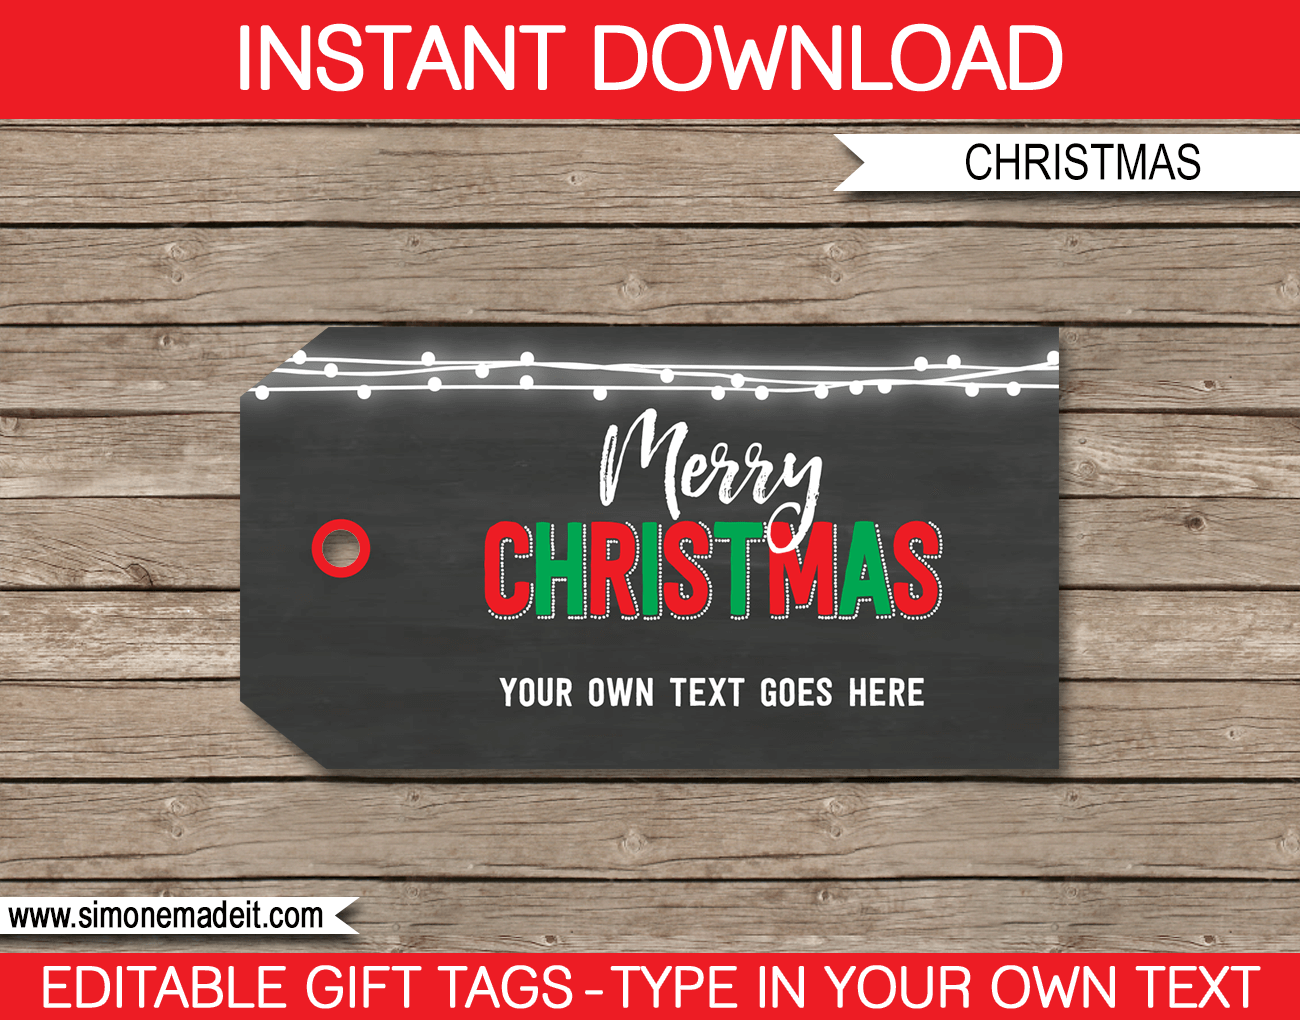 Christmas Chalkboard Gift Tag Template | editable & printable | Merry Christmas | INSTANT DOWNLOAD $3.00 via simonemadeit.com